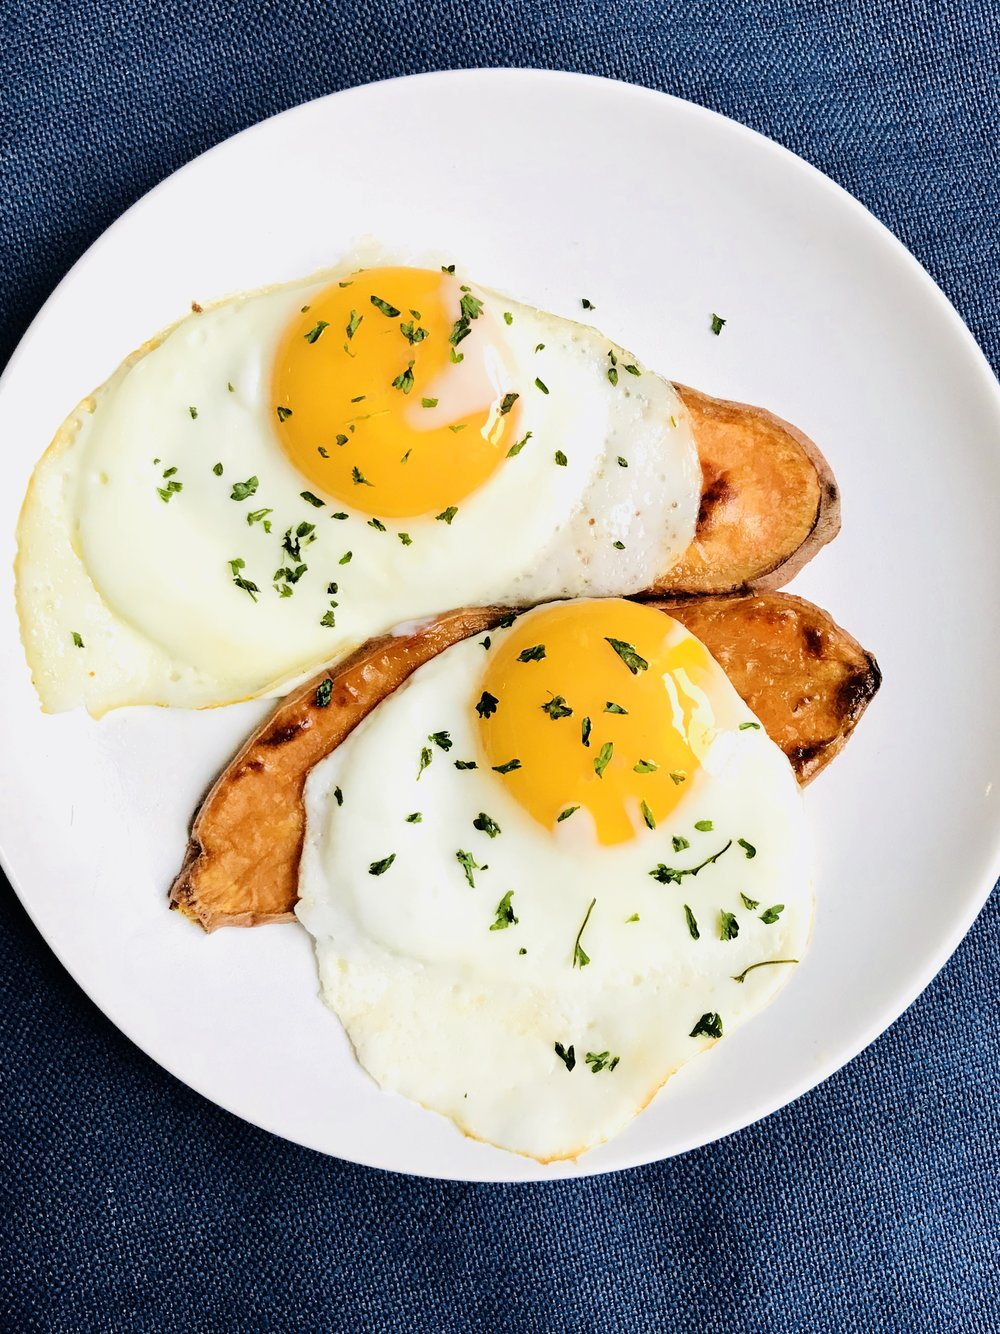 lb eggs on sweet potato toast.jpg